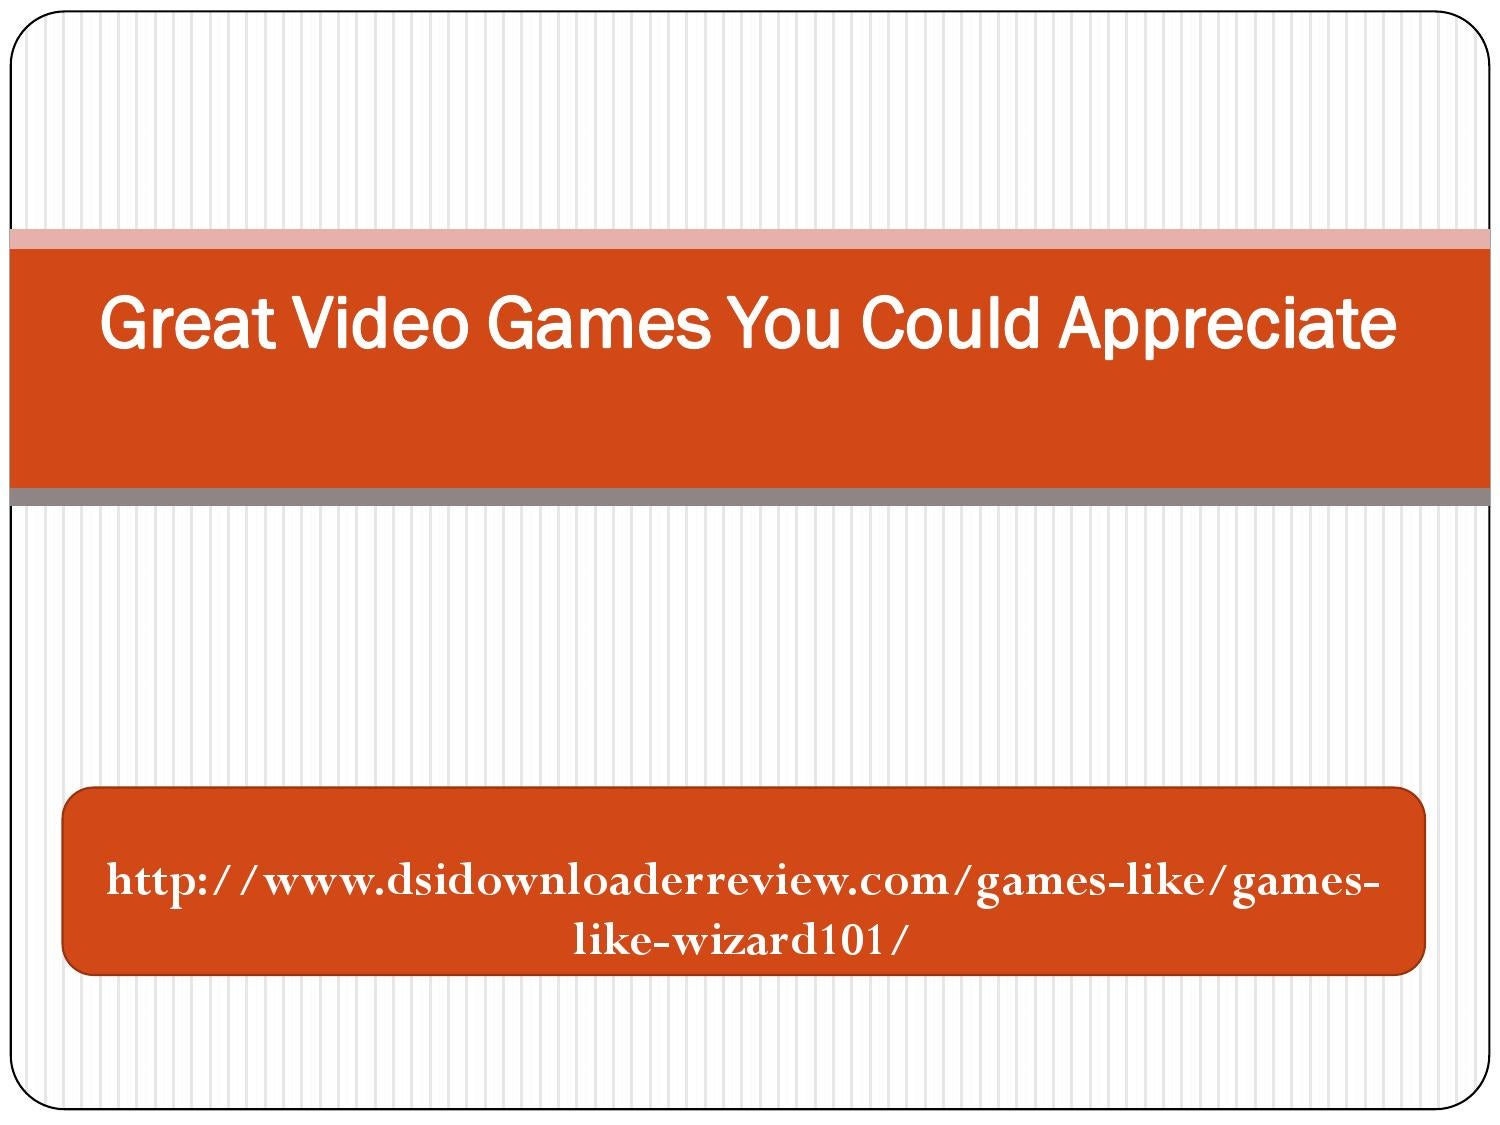 Great video games you could appreciate ppt by Susanne - issuu